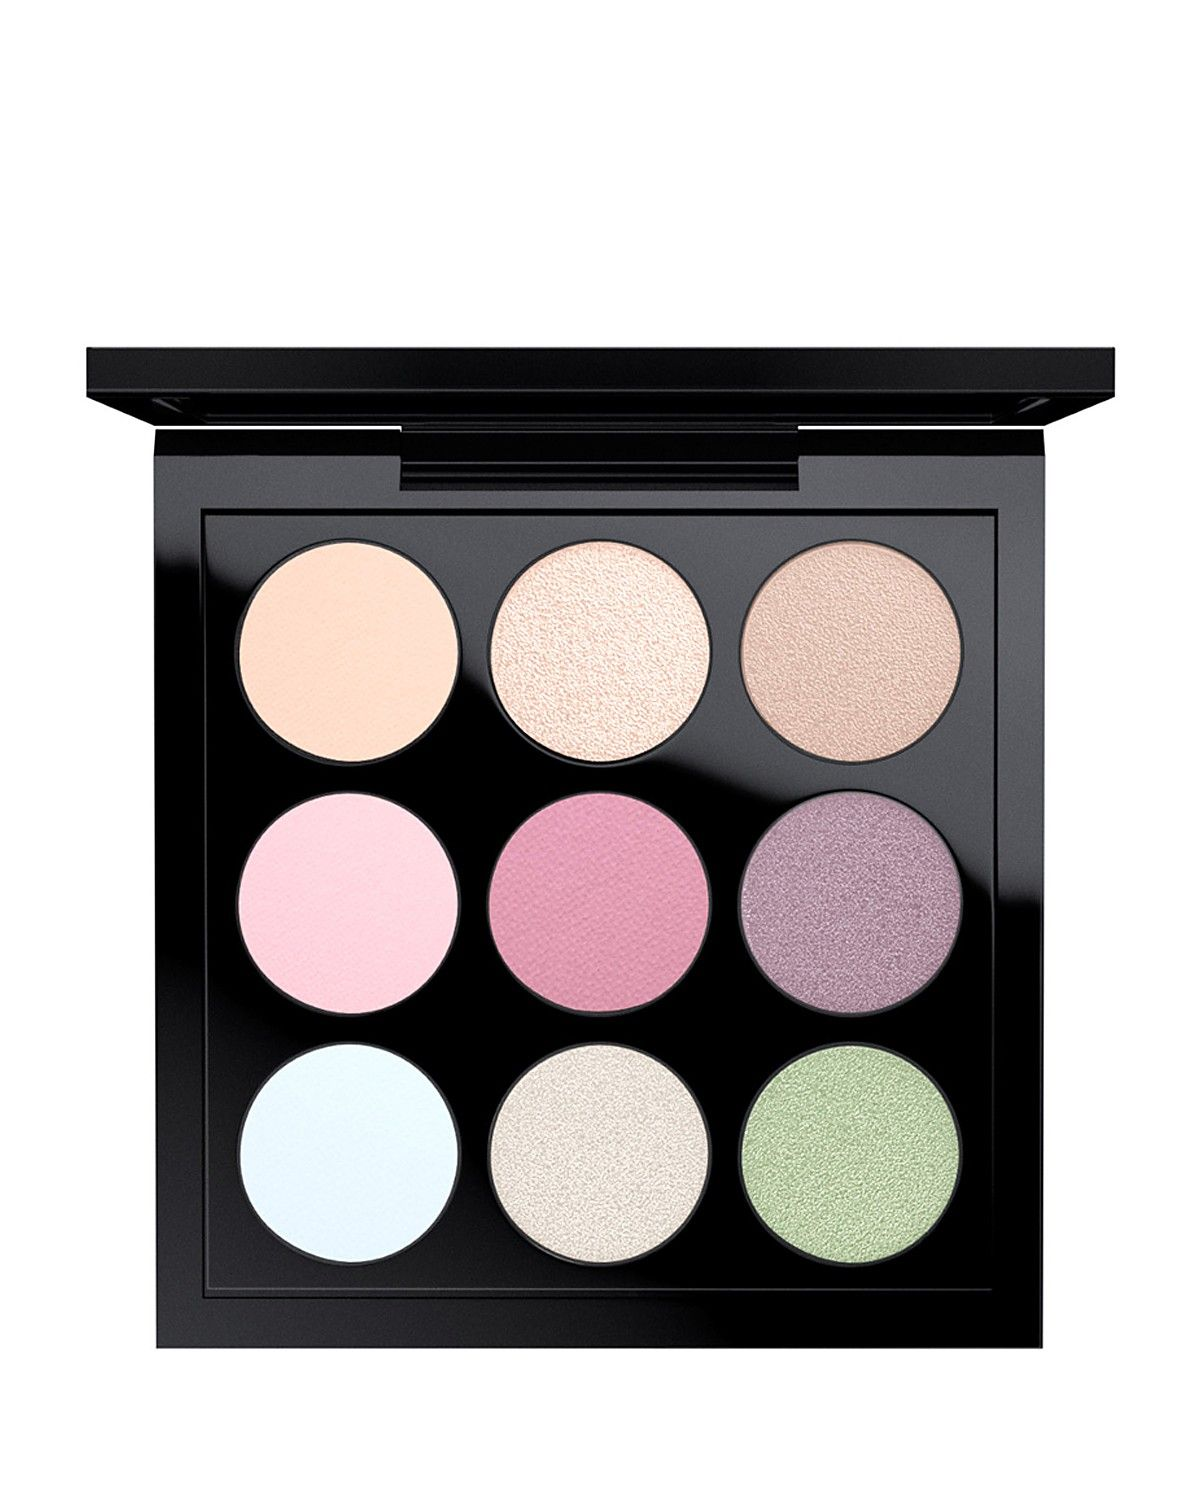 M·A·C Eye Shadow x 9, Pastel spring Makeup